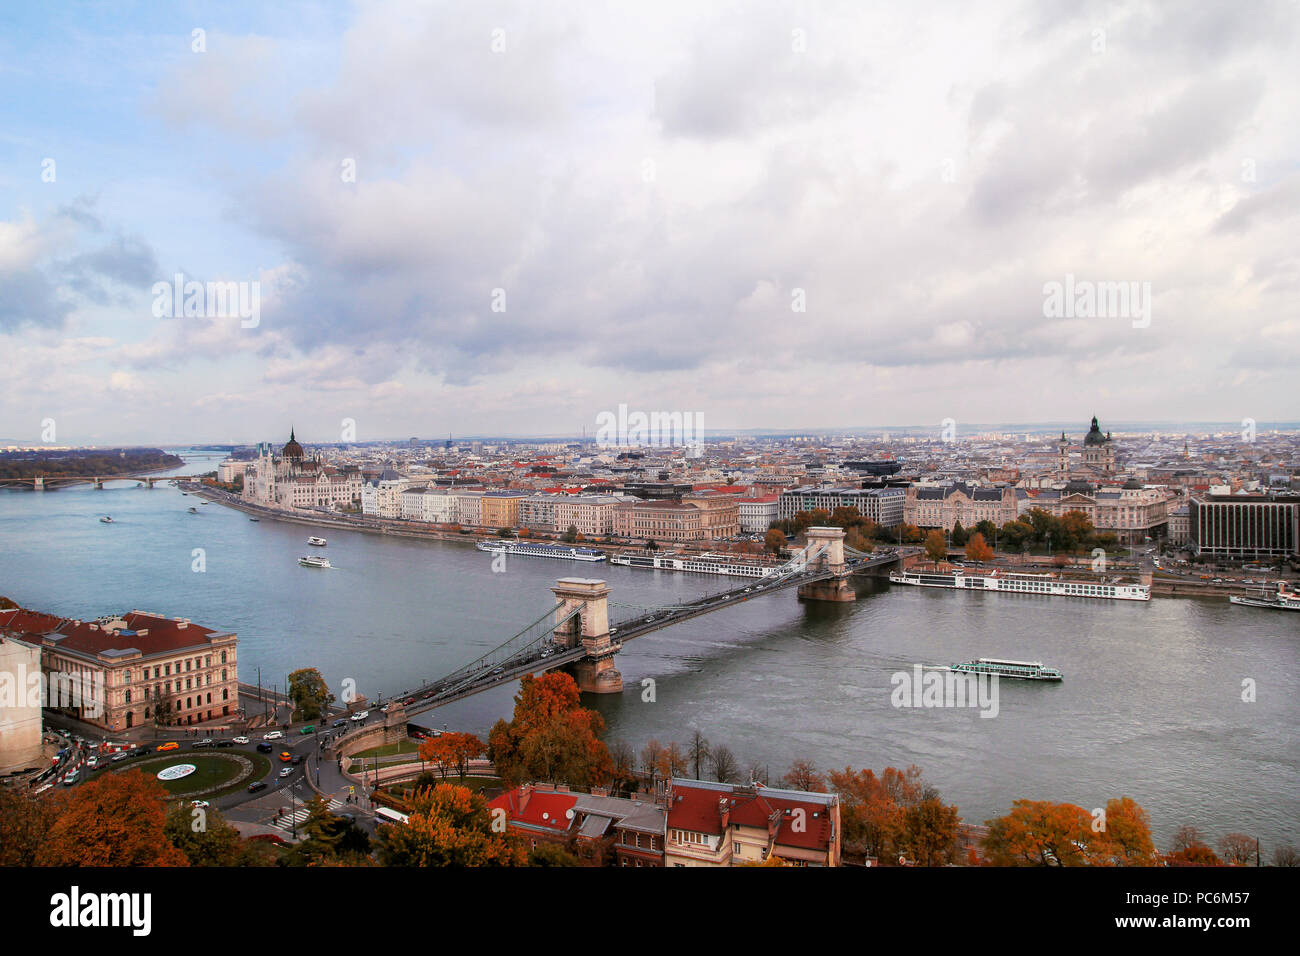 Budapest, Hungary - October 29, 2016: Landmark of Budapest, Chechen Chain Bridge that spans the River Danube between Bud and Pest. Buildings at the ba - Stock Image